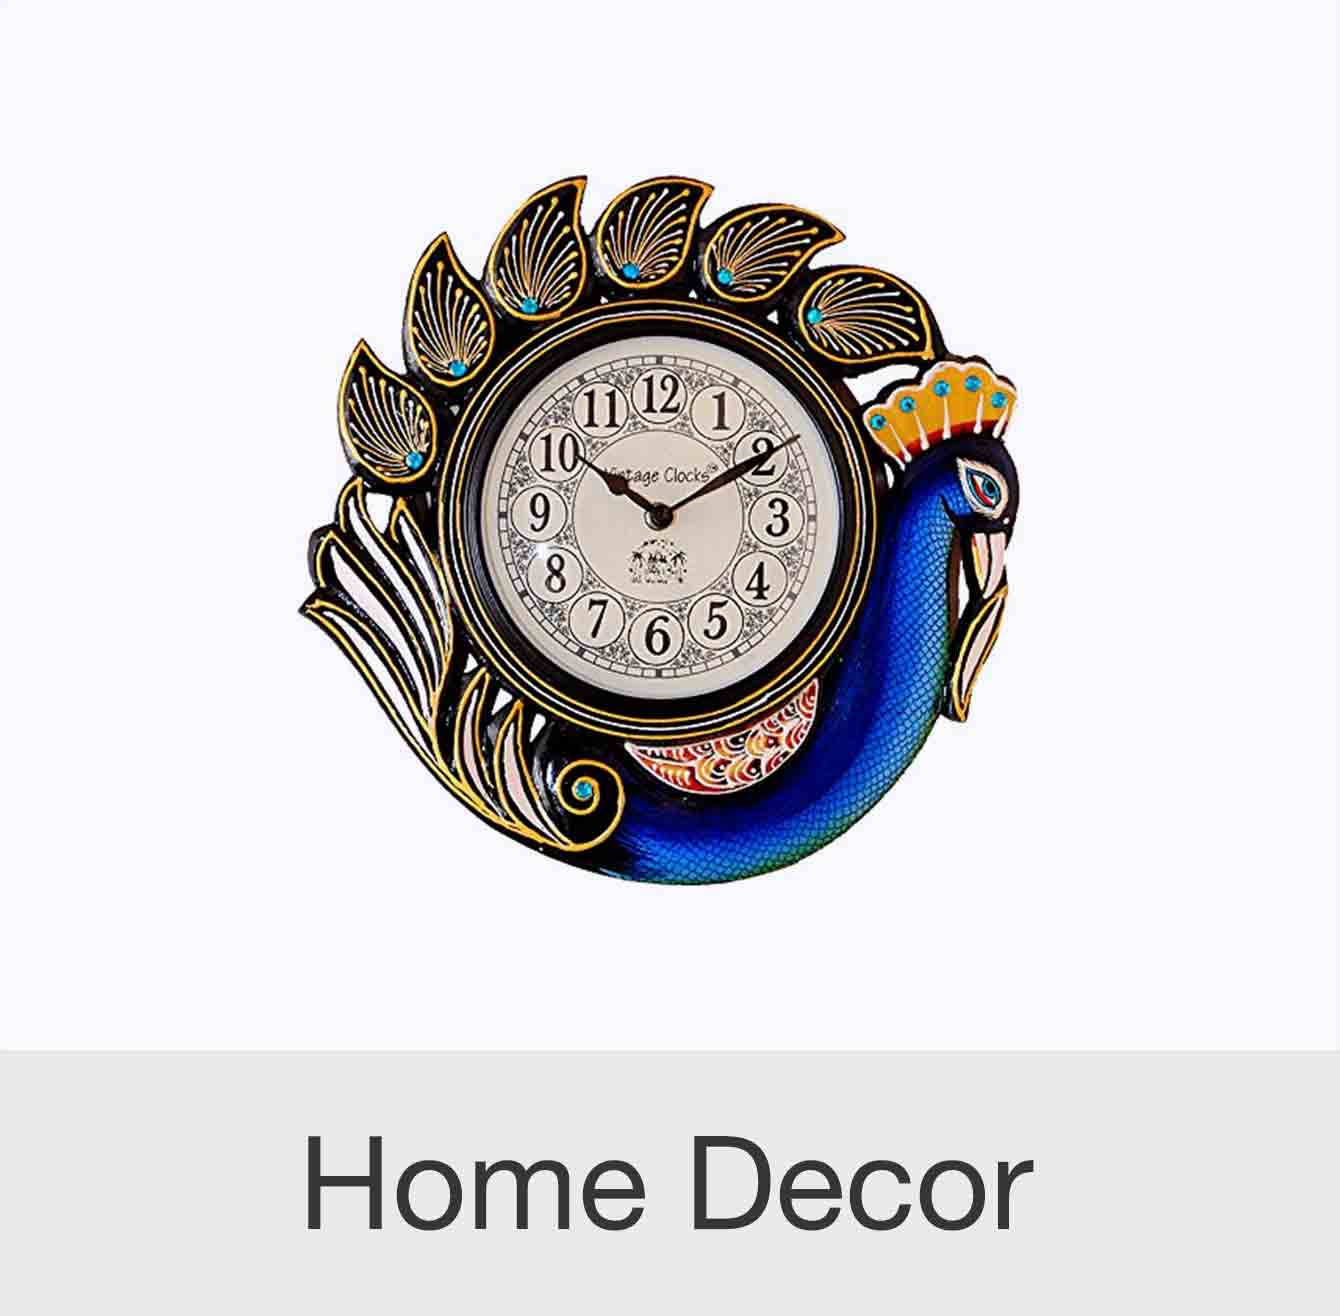 New Home Design: Home & Kitchen Online Store : Buy Home ...